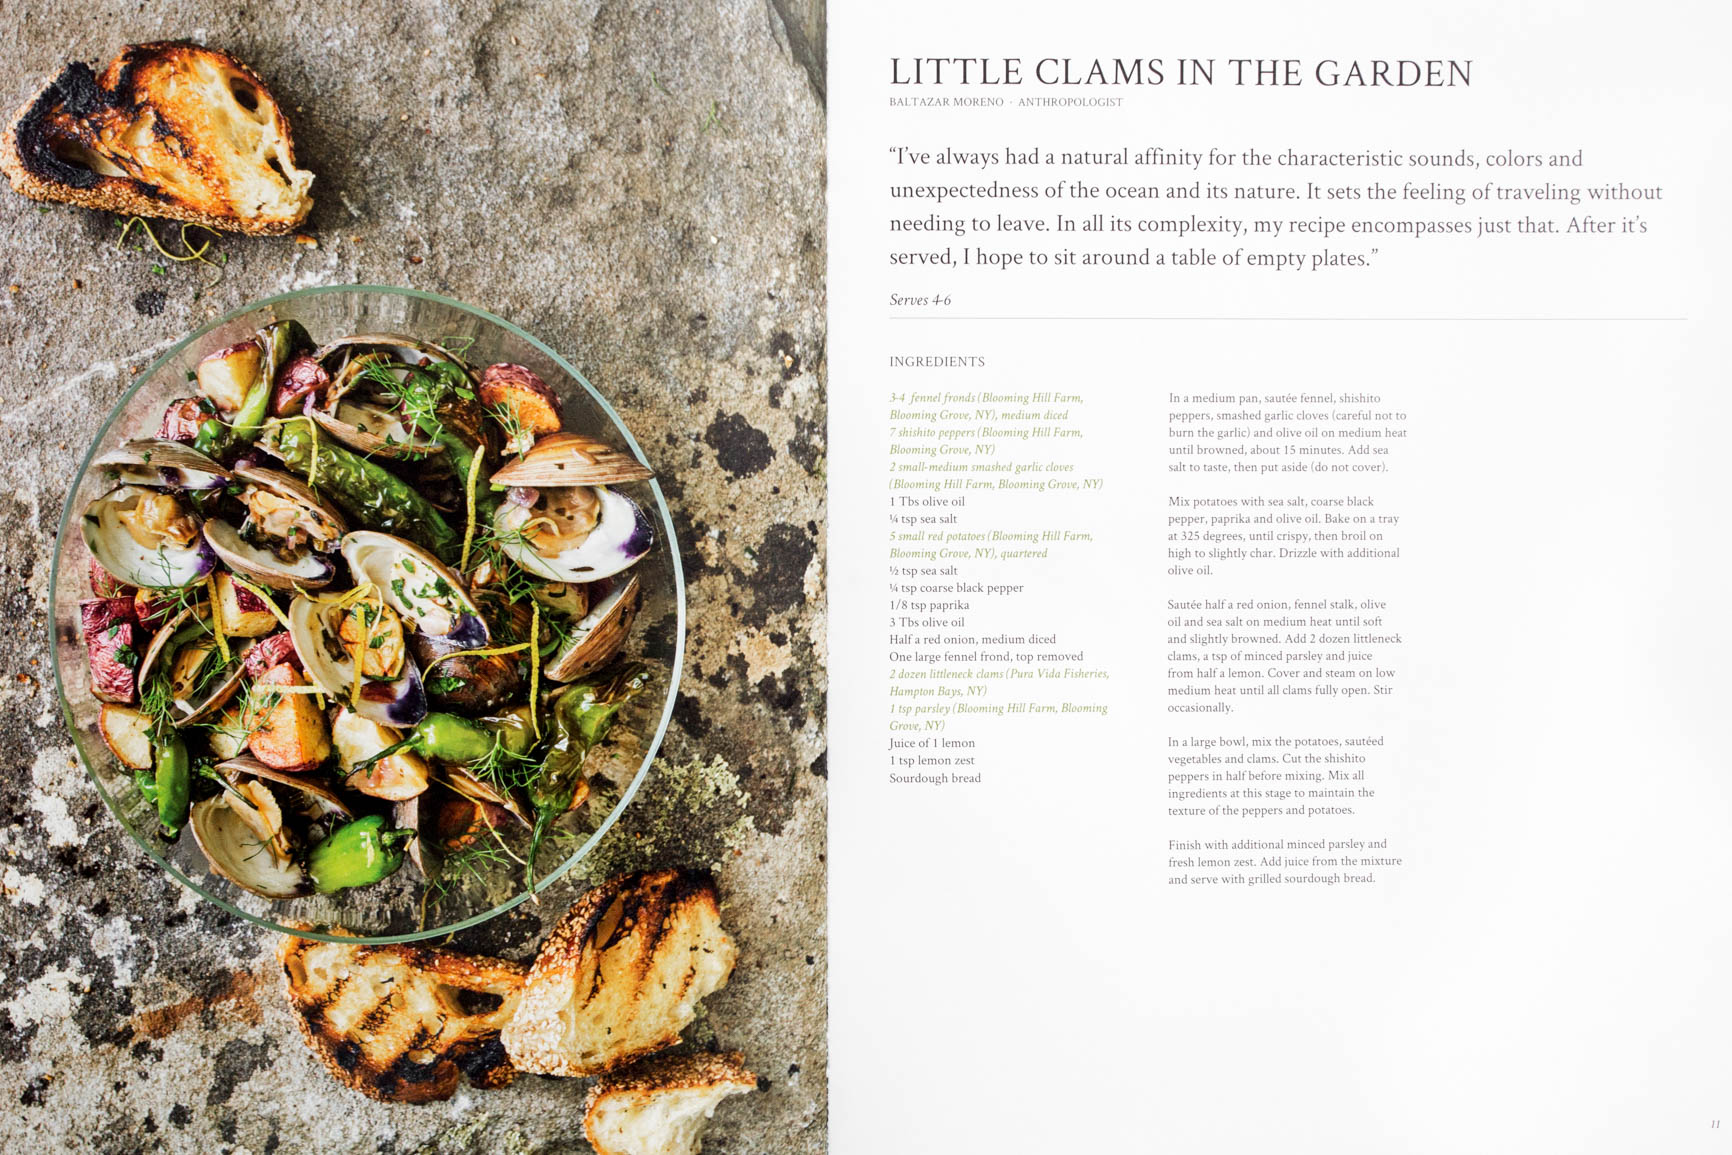 food-photography-cookbook-local-food-clams.jpg